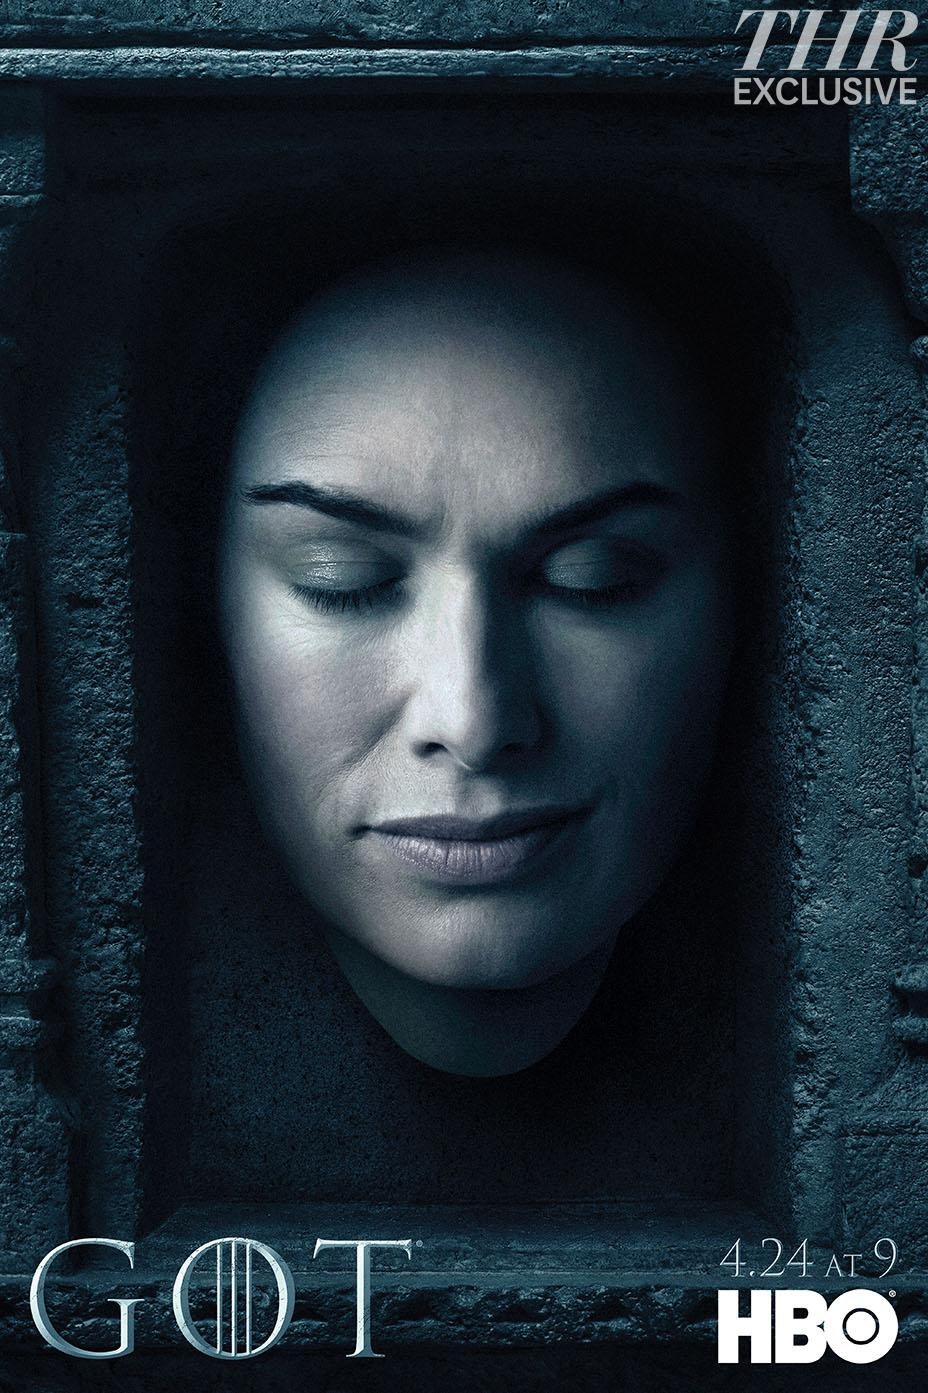 Game Of Thrones Teases Season 6 With Hall Of Faces Posters